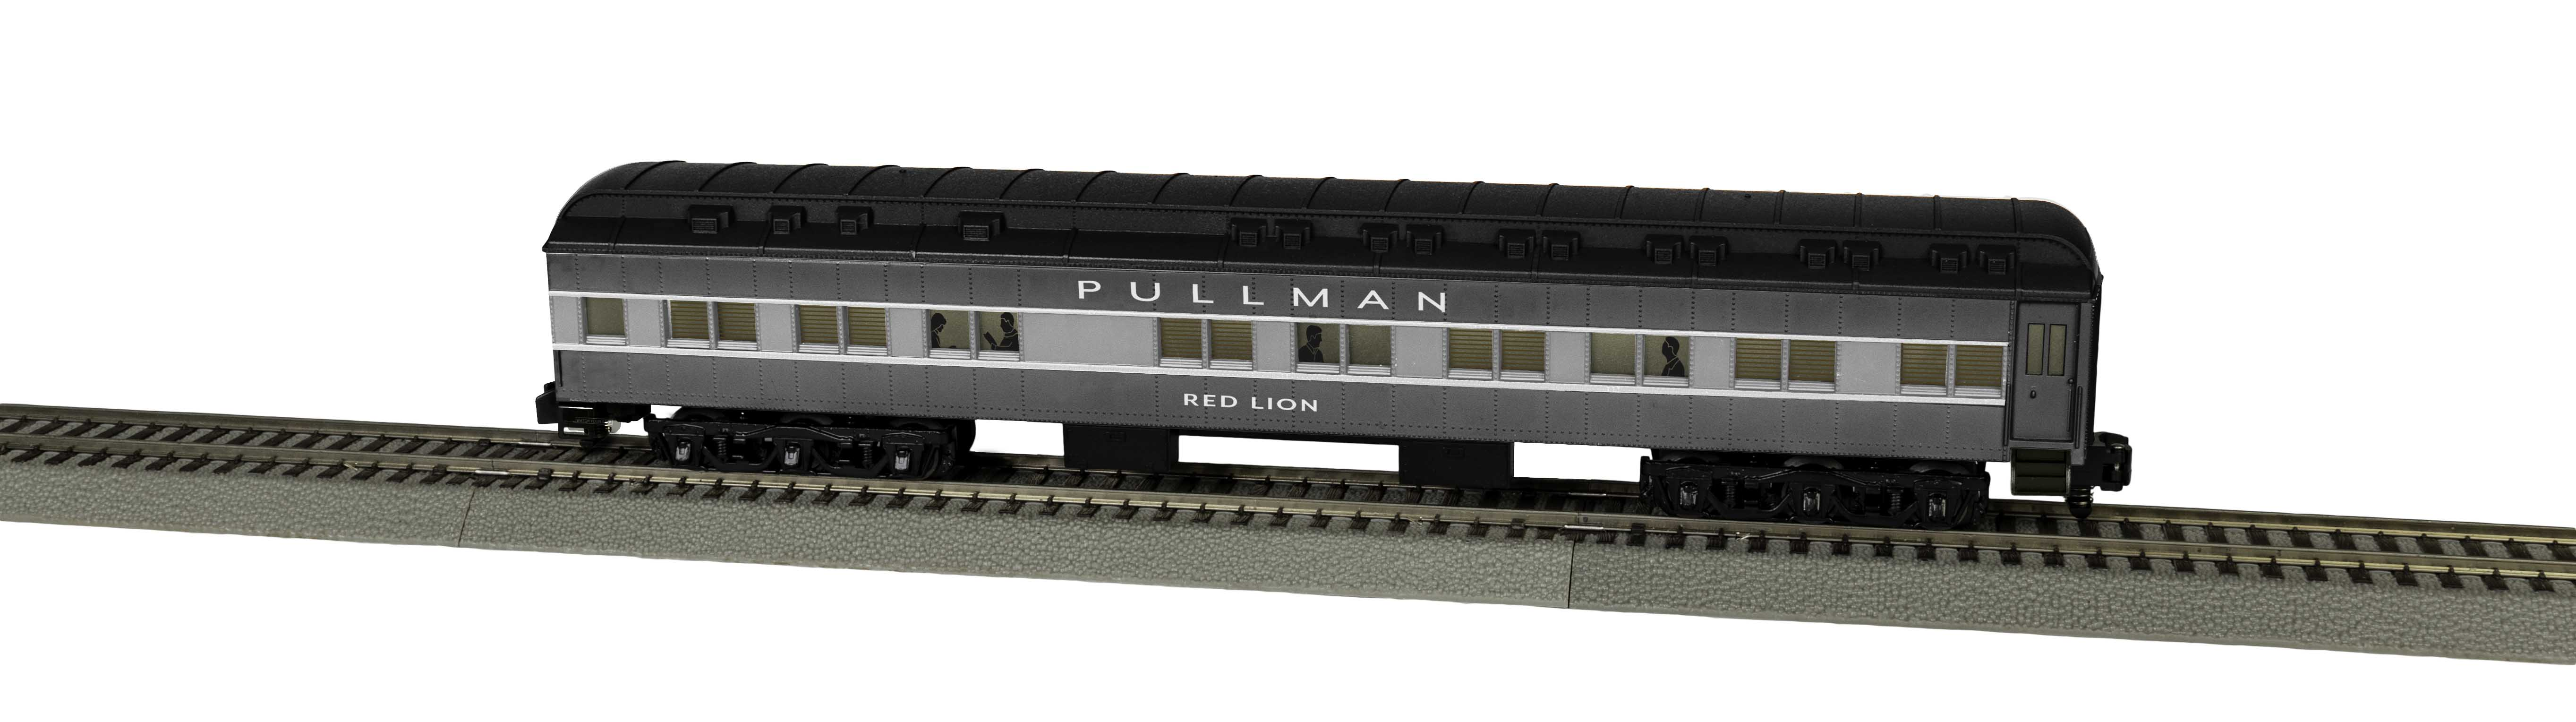 Lionel 2019422 S Pullman Heavyweight Sleeper Red Lion